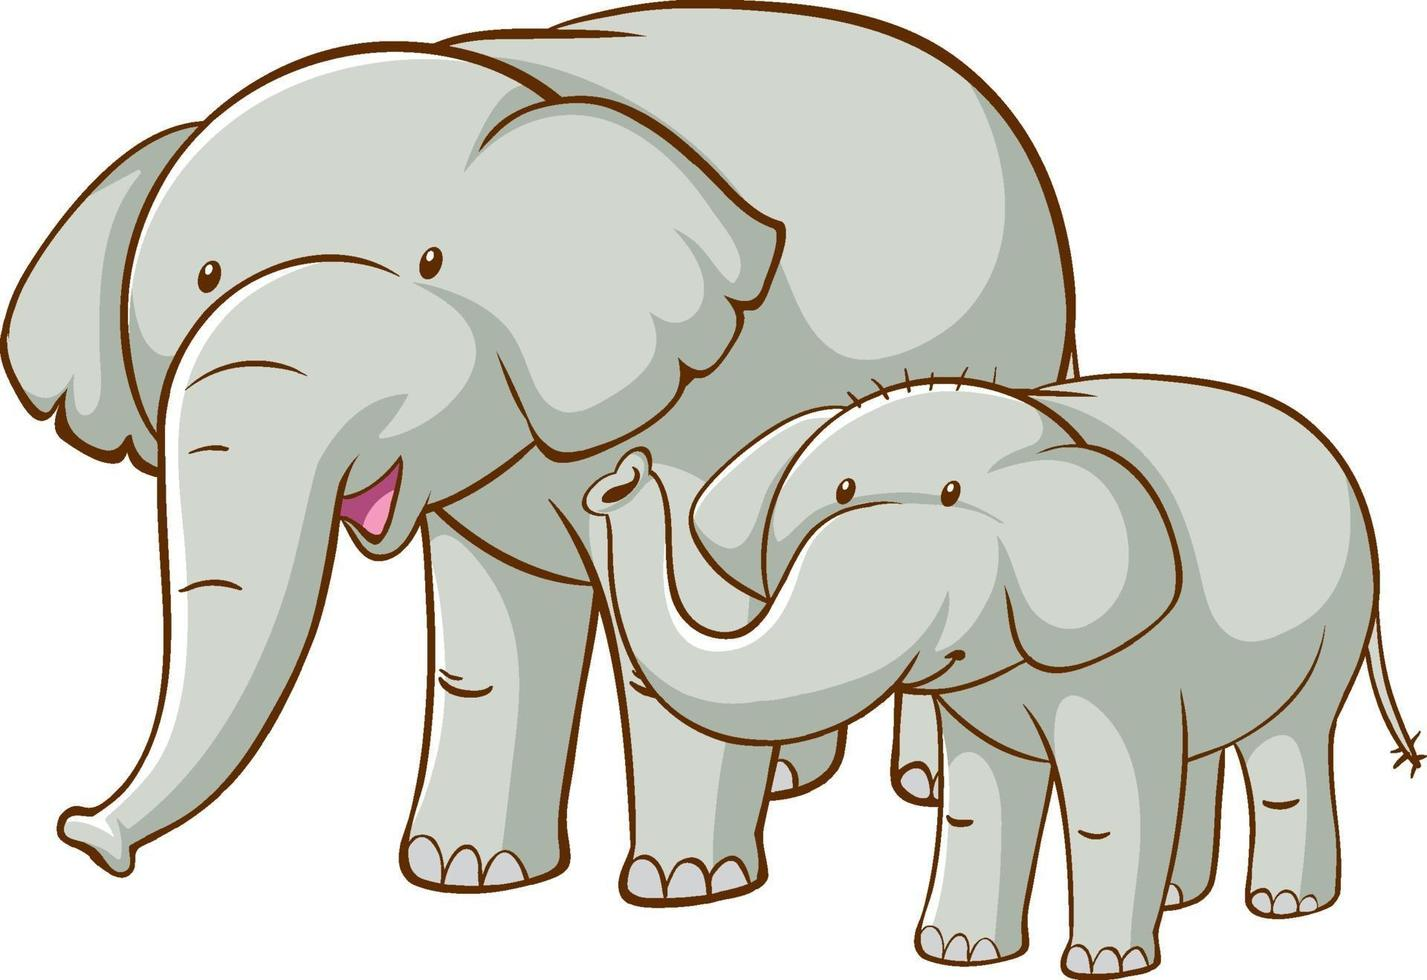 Big and small elephants cartoon on white background vector